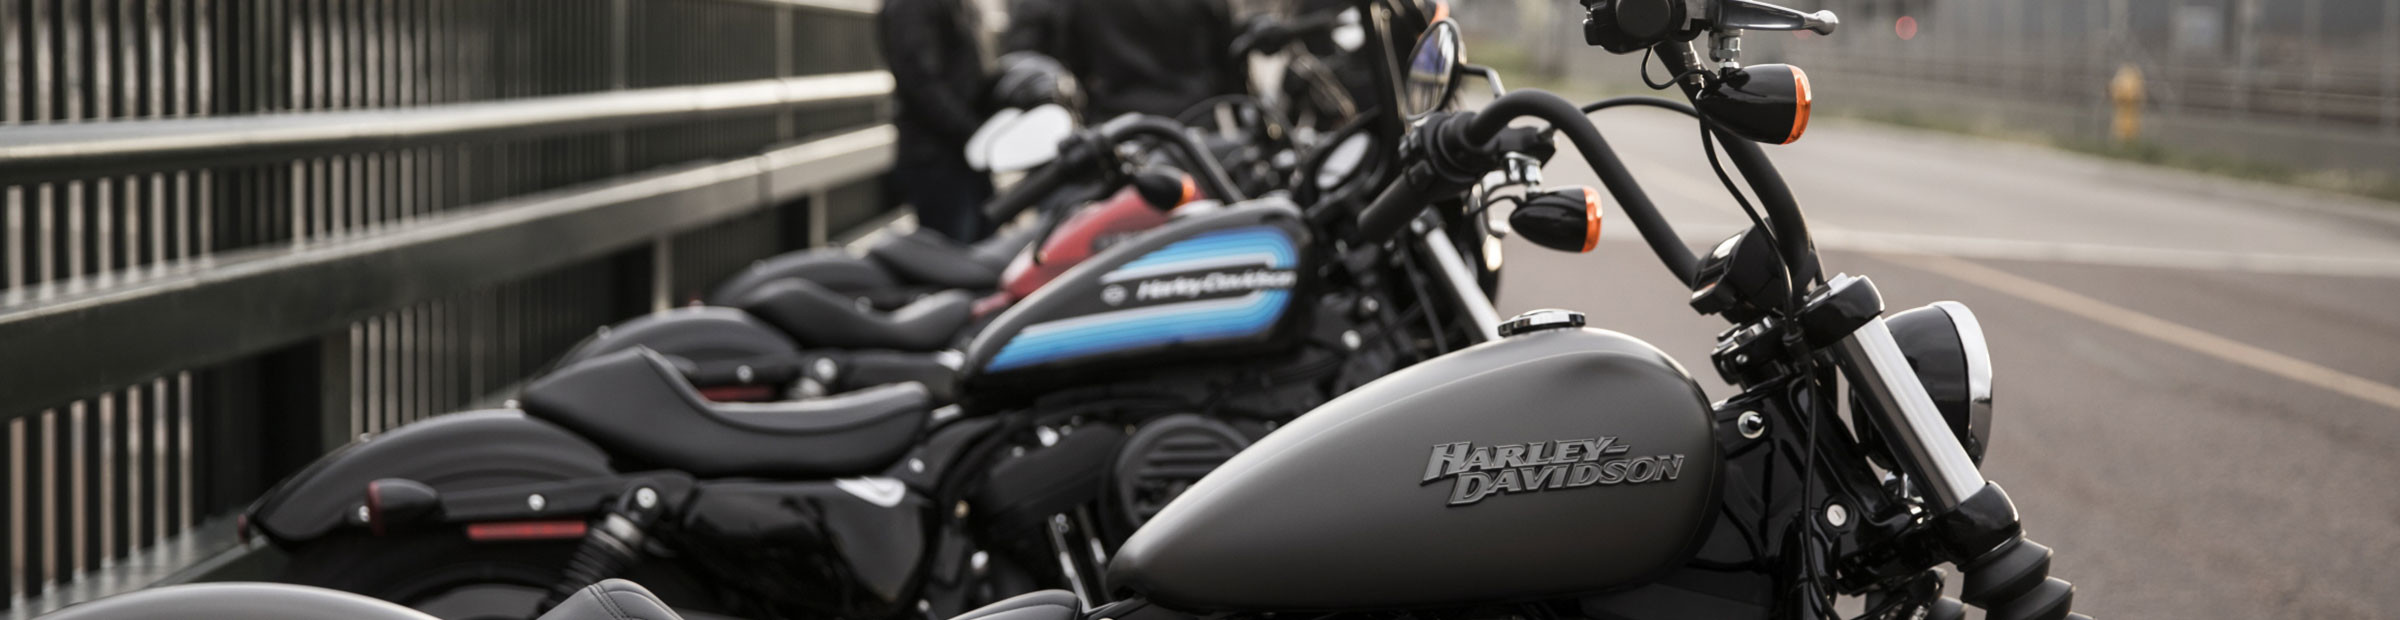 Trade In Your Ride at Greeley Harley-Davidson®